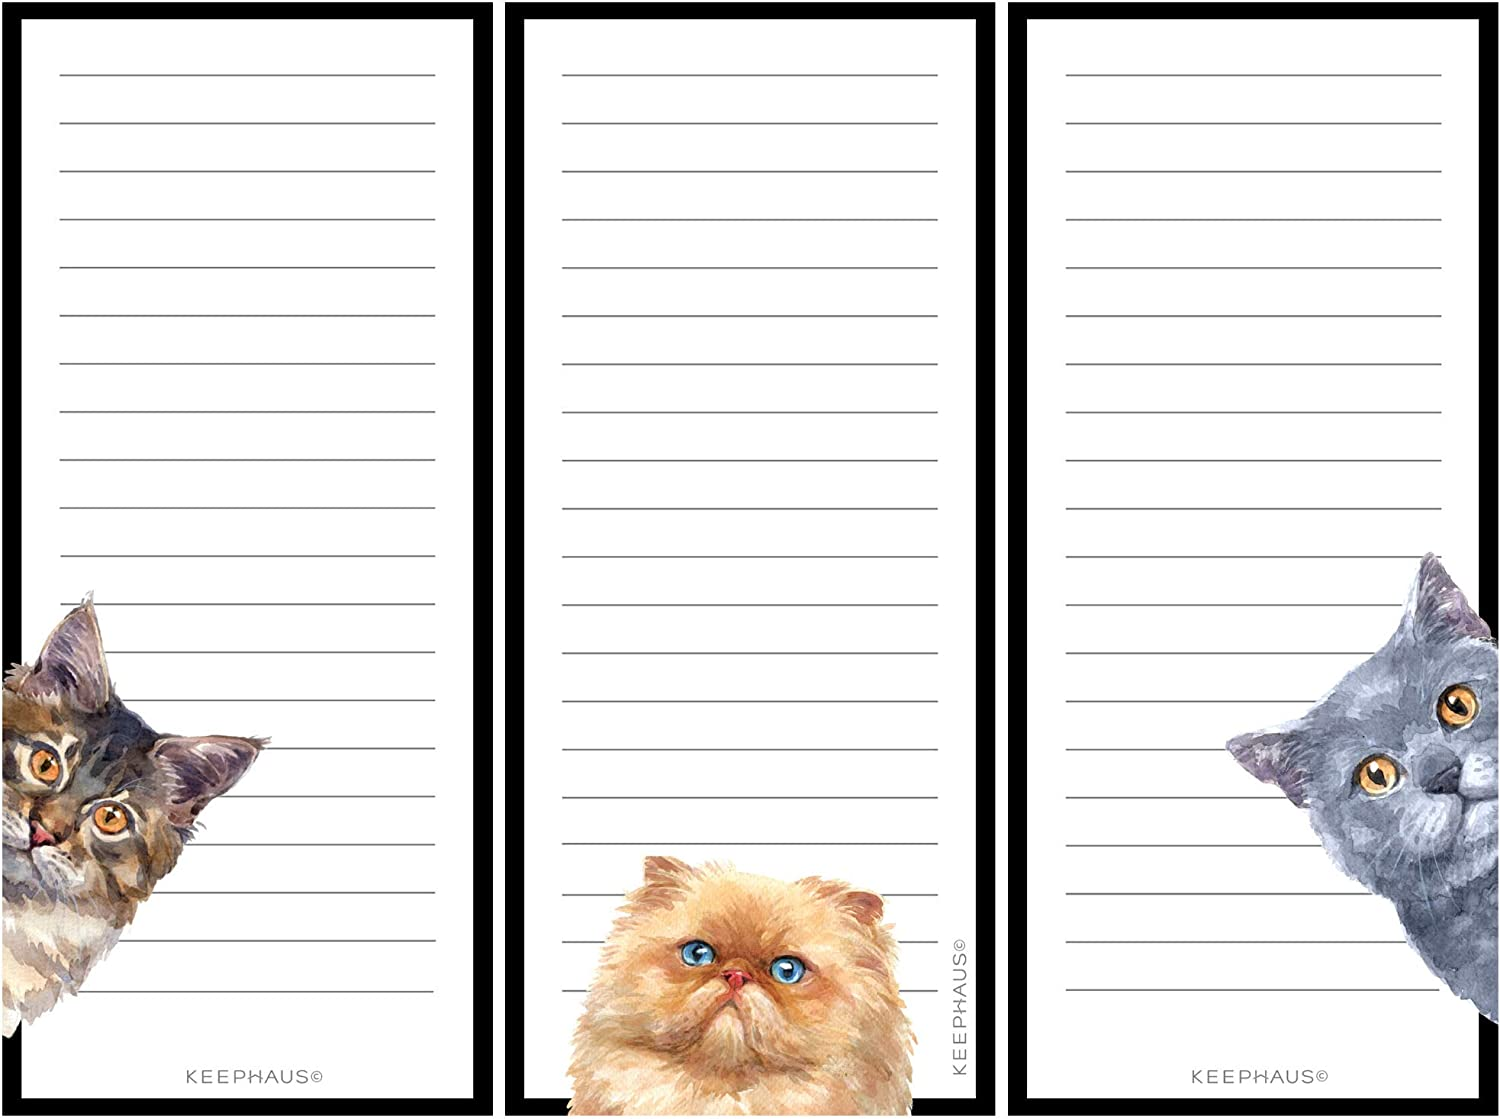 Curious Cats Magnetic To Do List Notepads (3 Pack); Grocery Shopping List Magnet Pad for Fridge; Magnetic Paper Pad for Reminders, Memo Pad and Scratch Pad; Cute Cat Designs | 50 Sheets per Note Pad